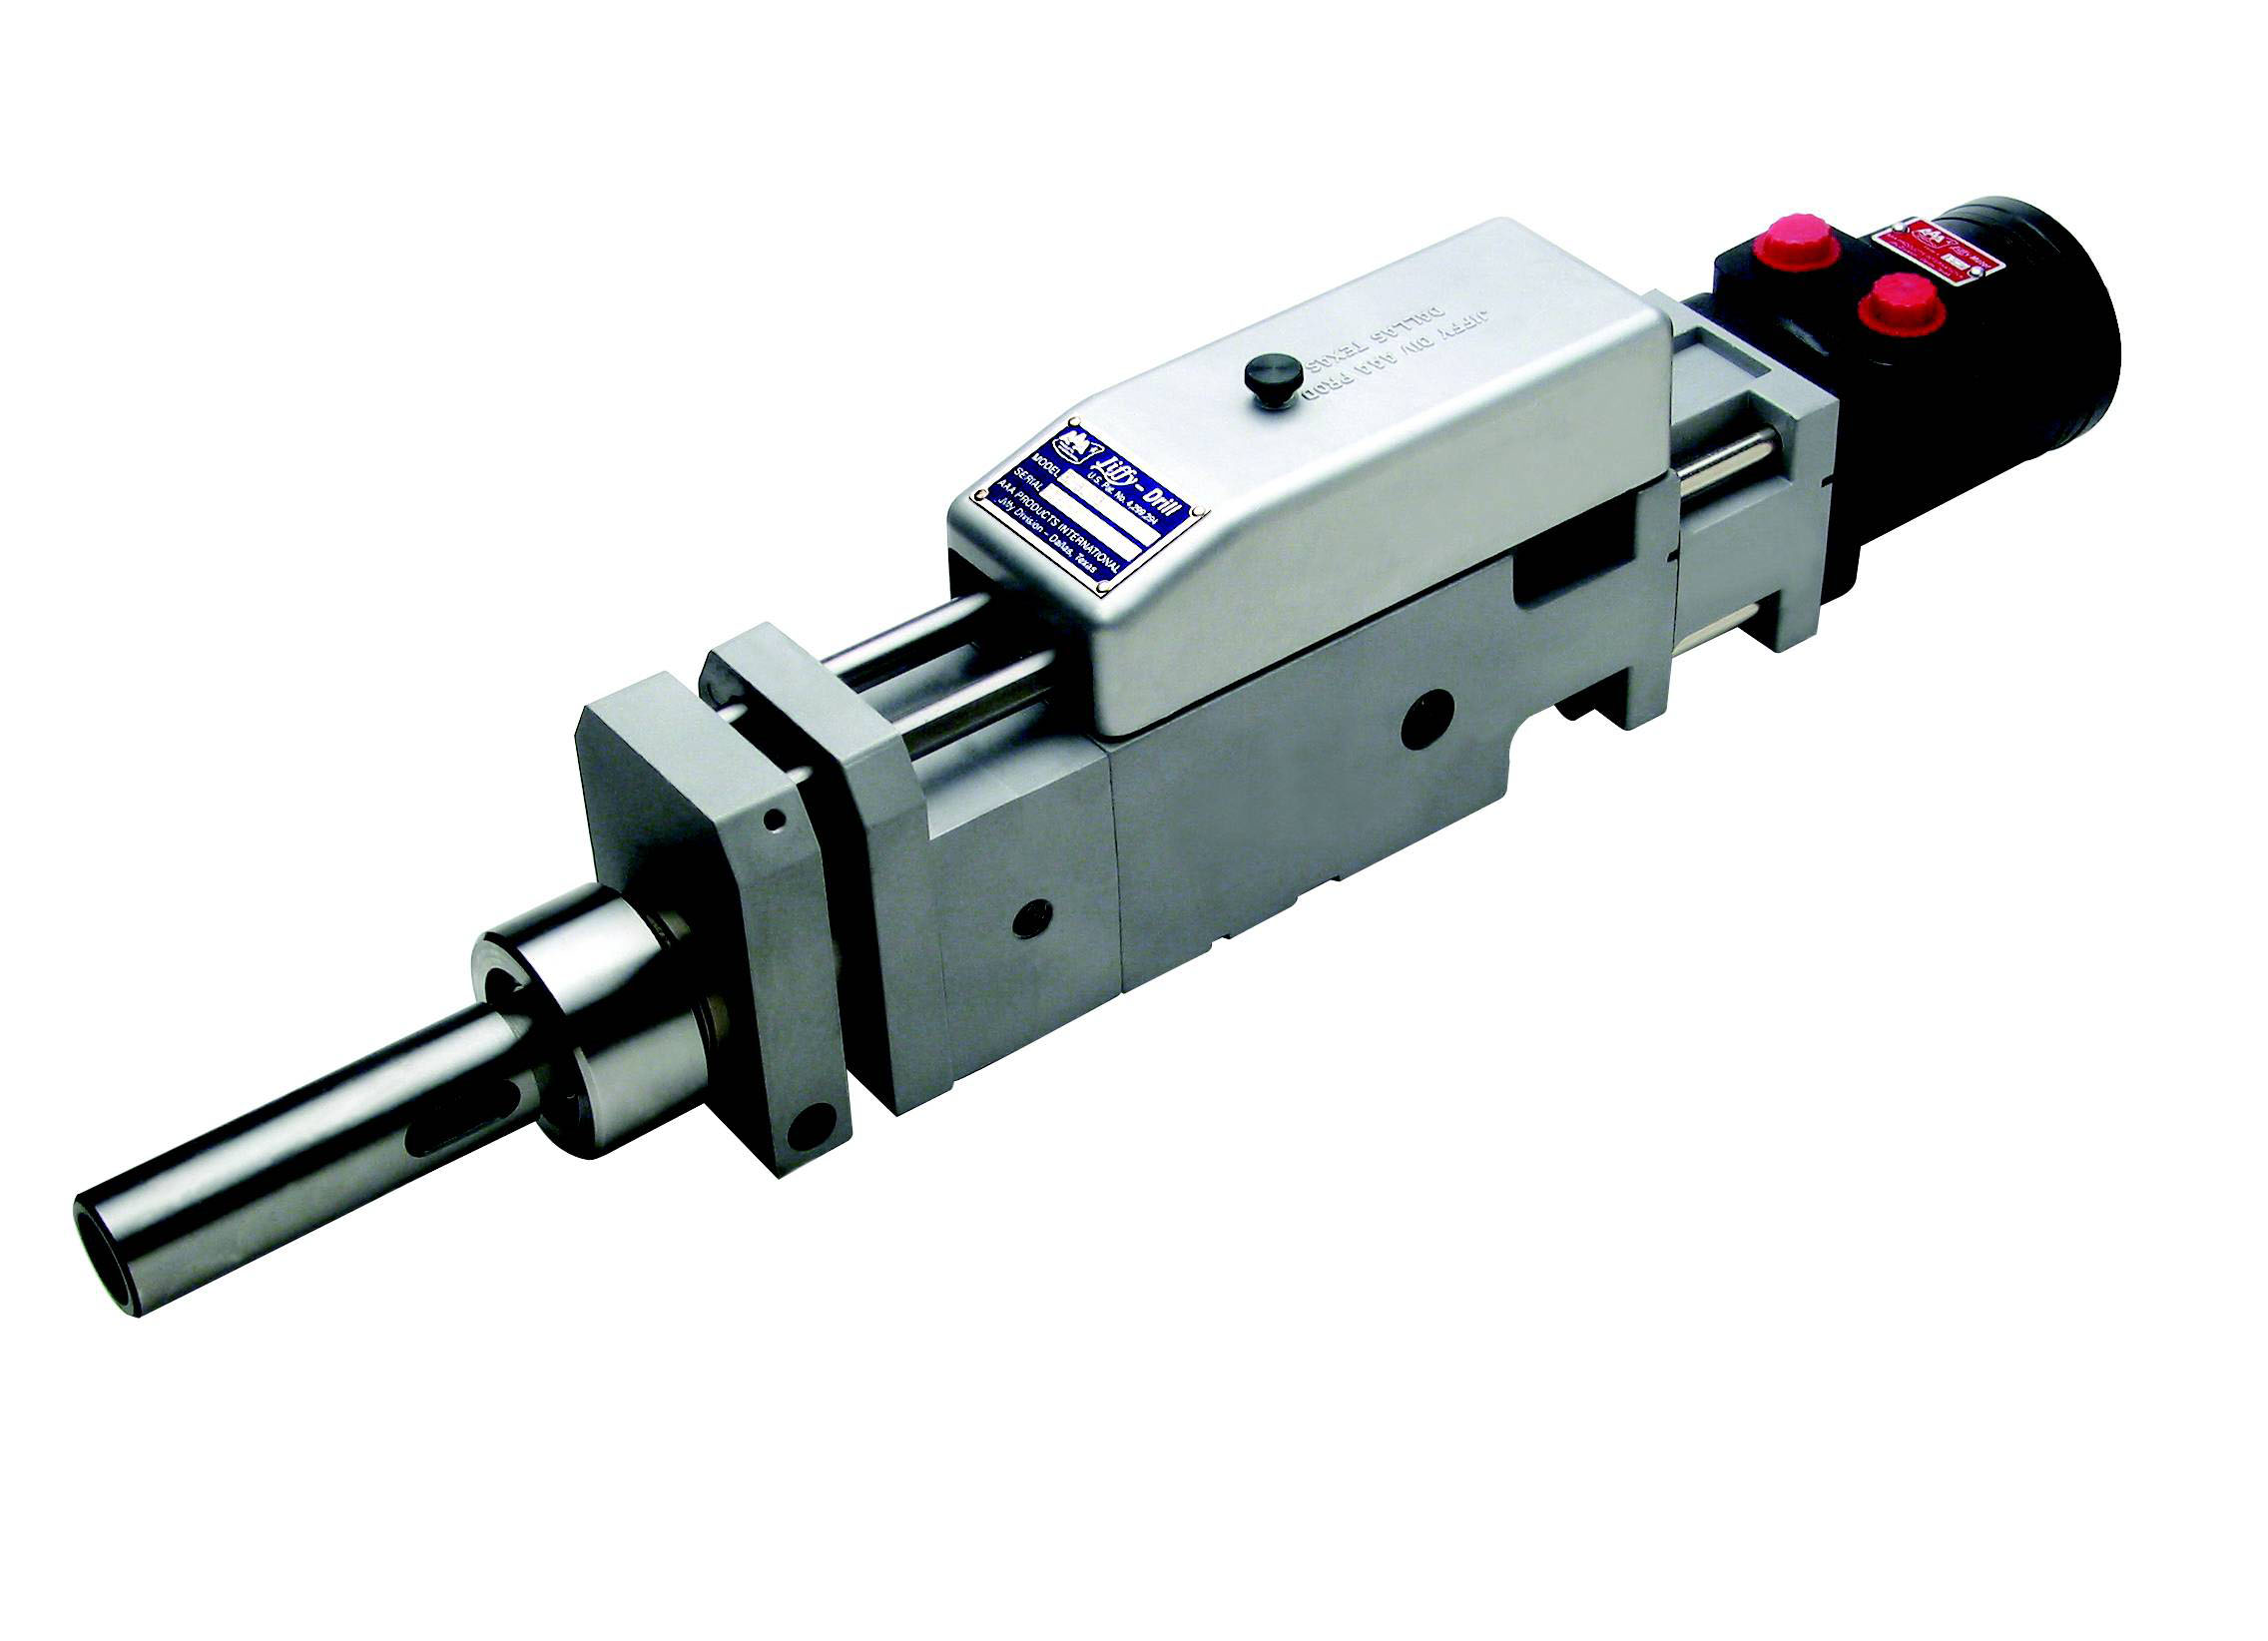 Jiffy Drill General Information Aaa Products International Pushbutton Completes The Path For Current Flow And Energizes Motor